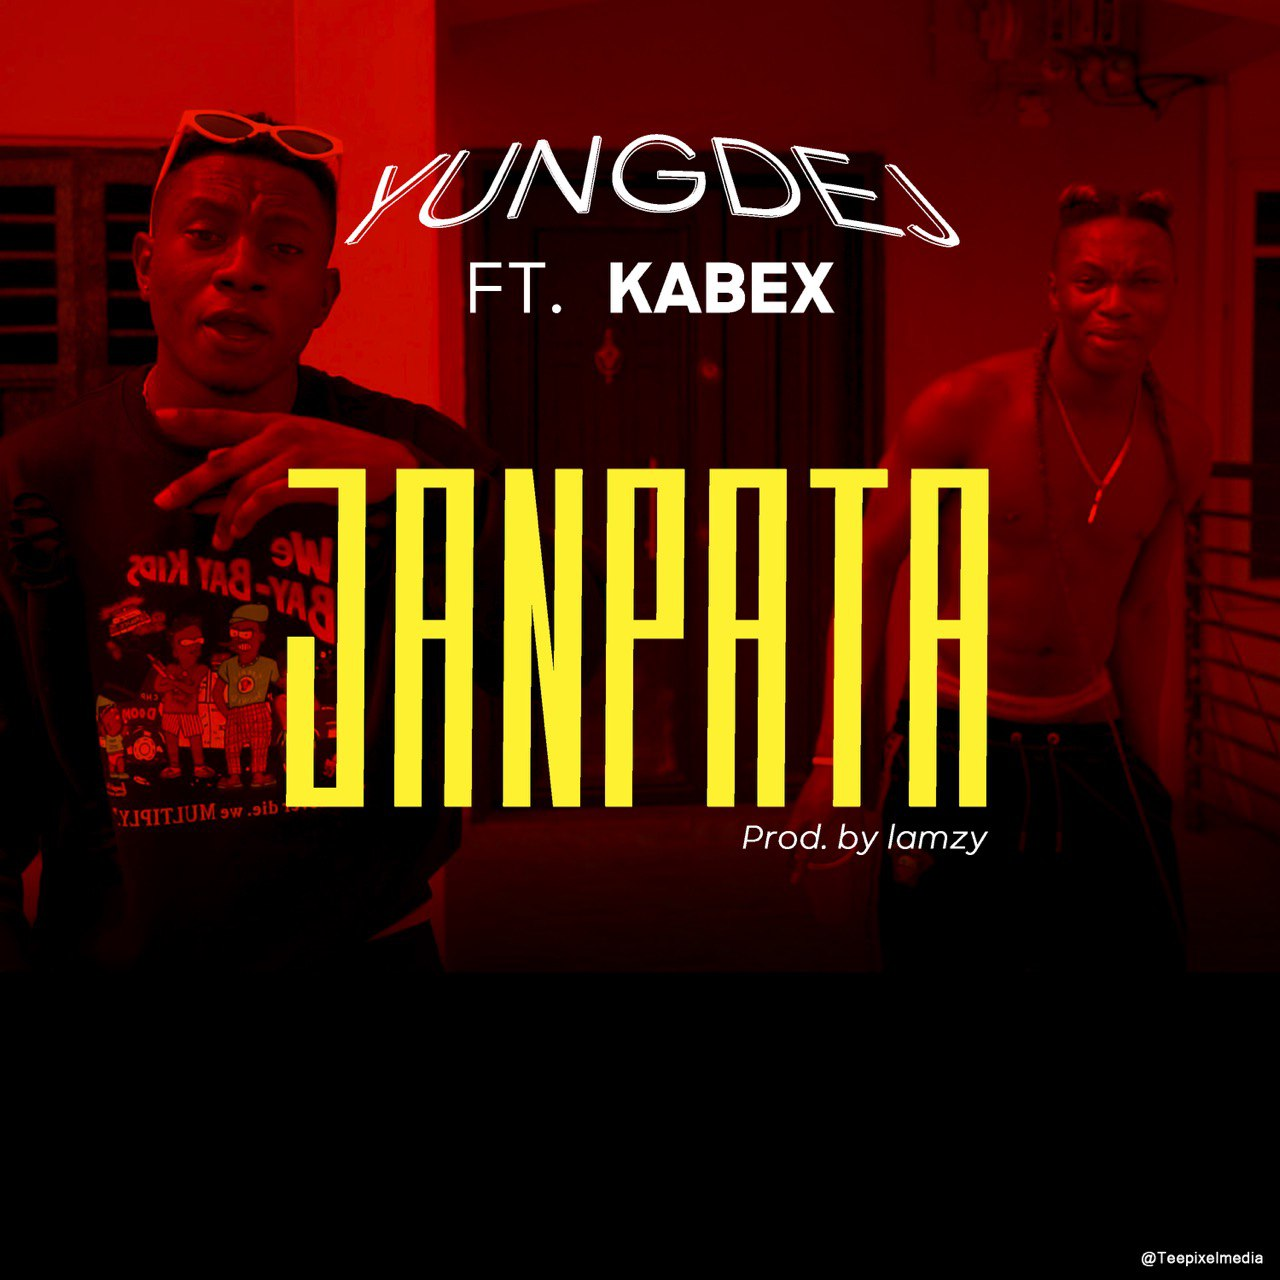 [Music] Yungdej Ft. Kabex – Janpata